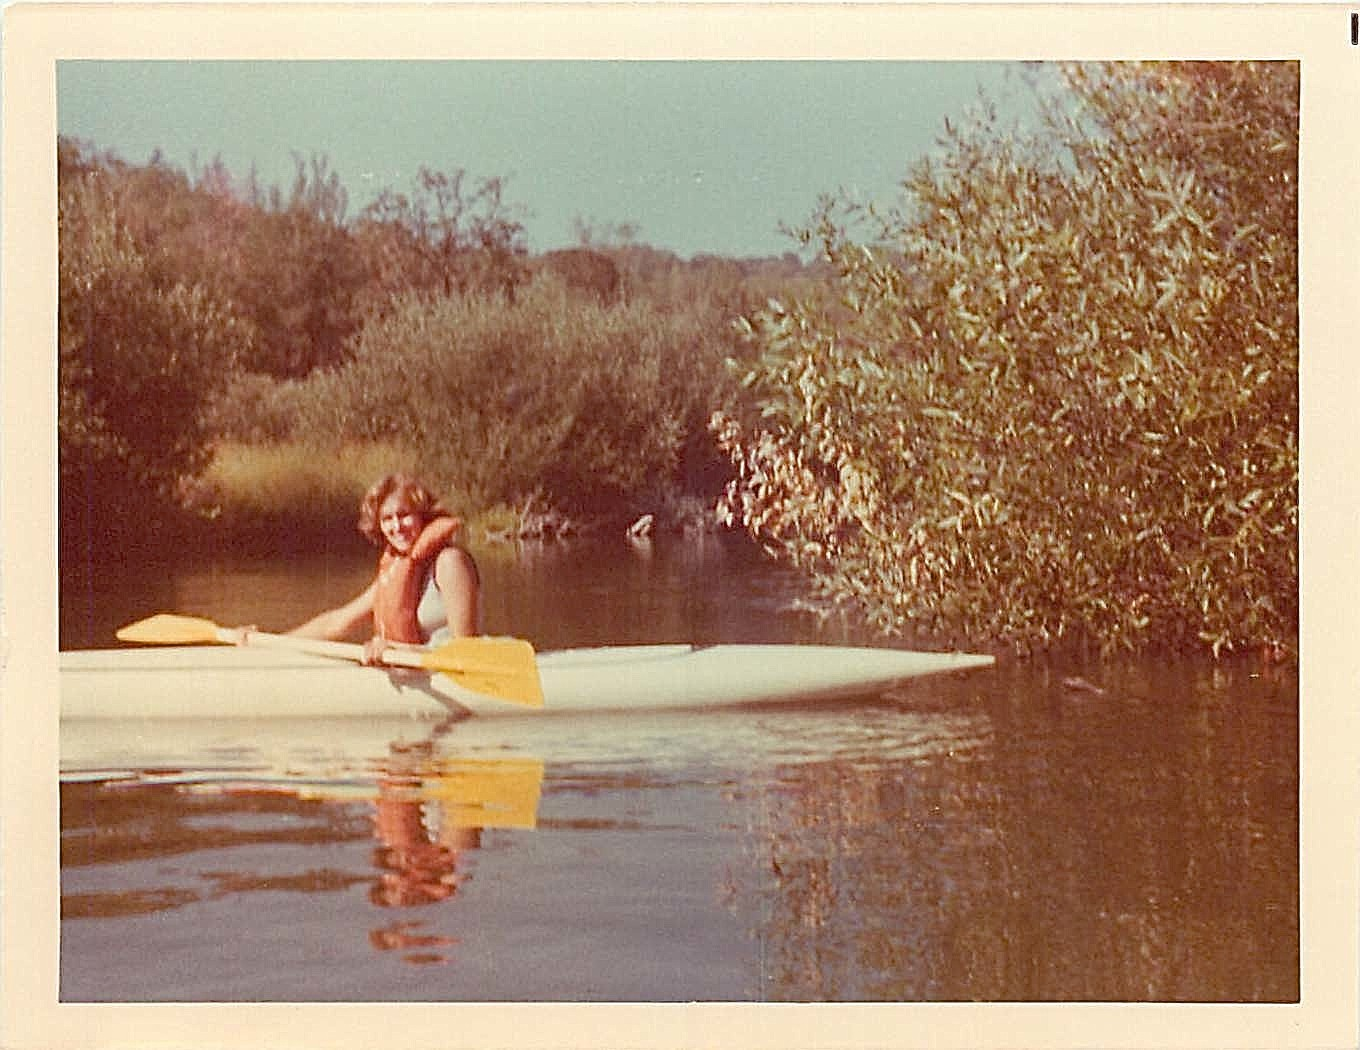 Lorraine on the Russian River, August, 1977